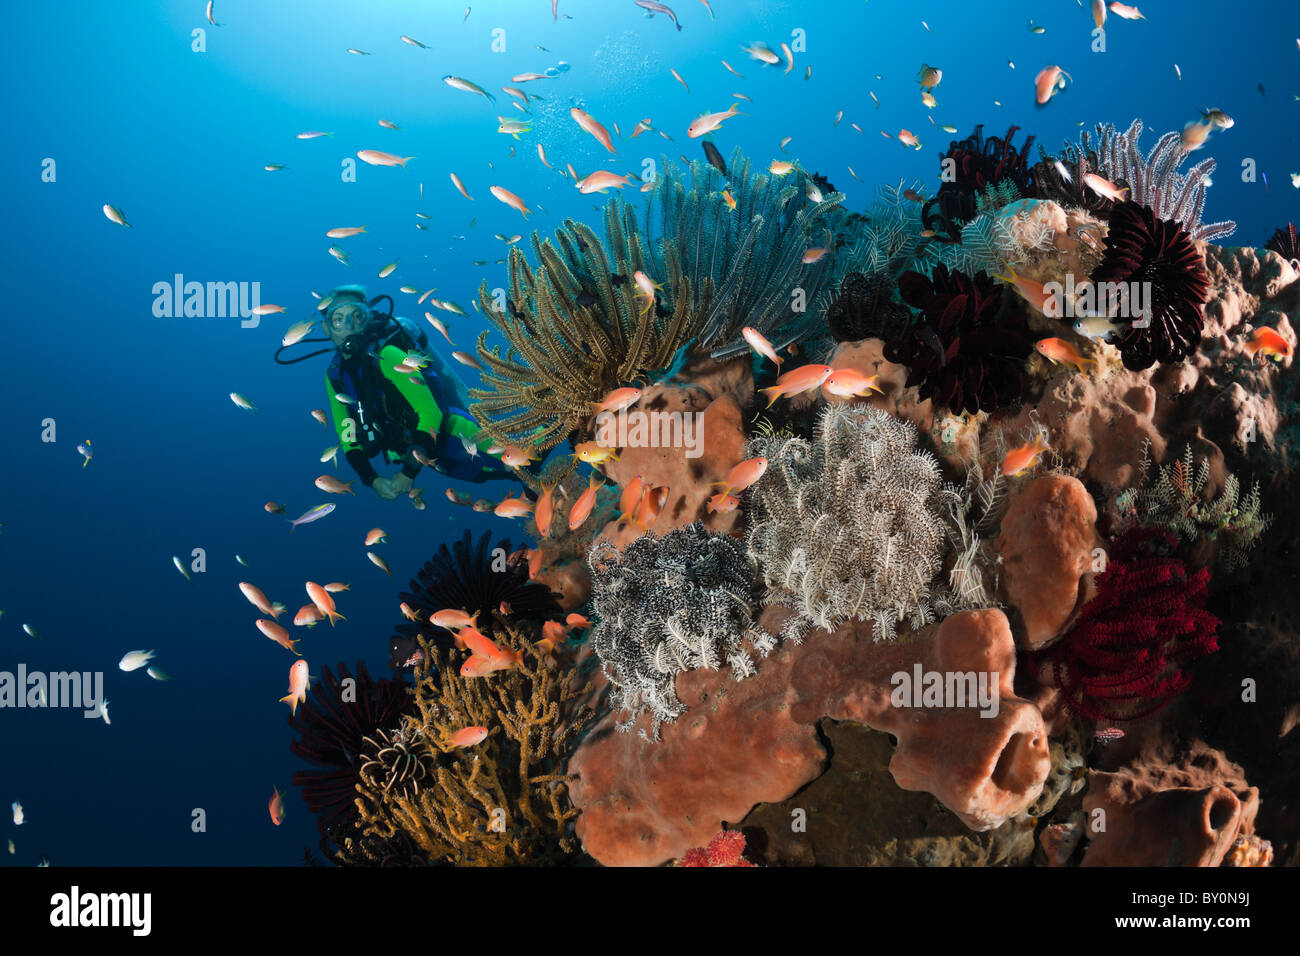 Scuba Diving in Coral Reef, Amed, Bali, Indonesia - Stock Image